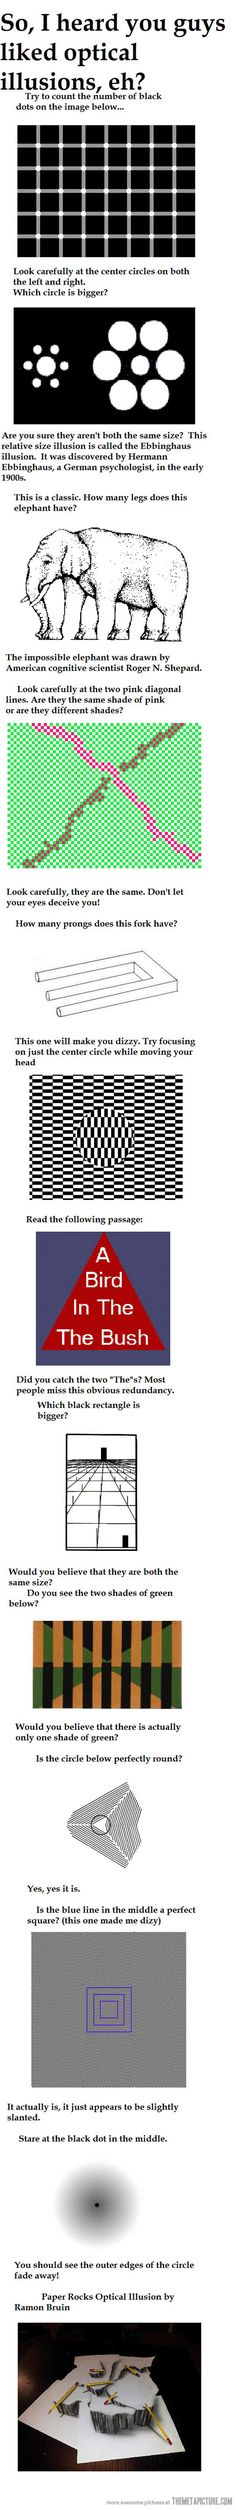 Here are some optical illusions